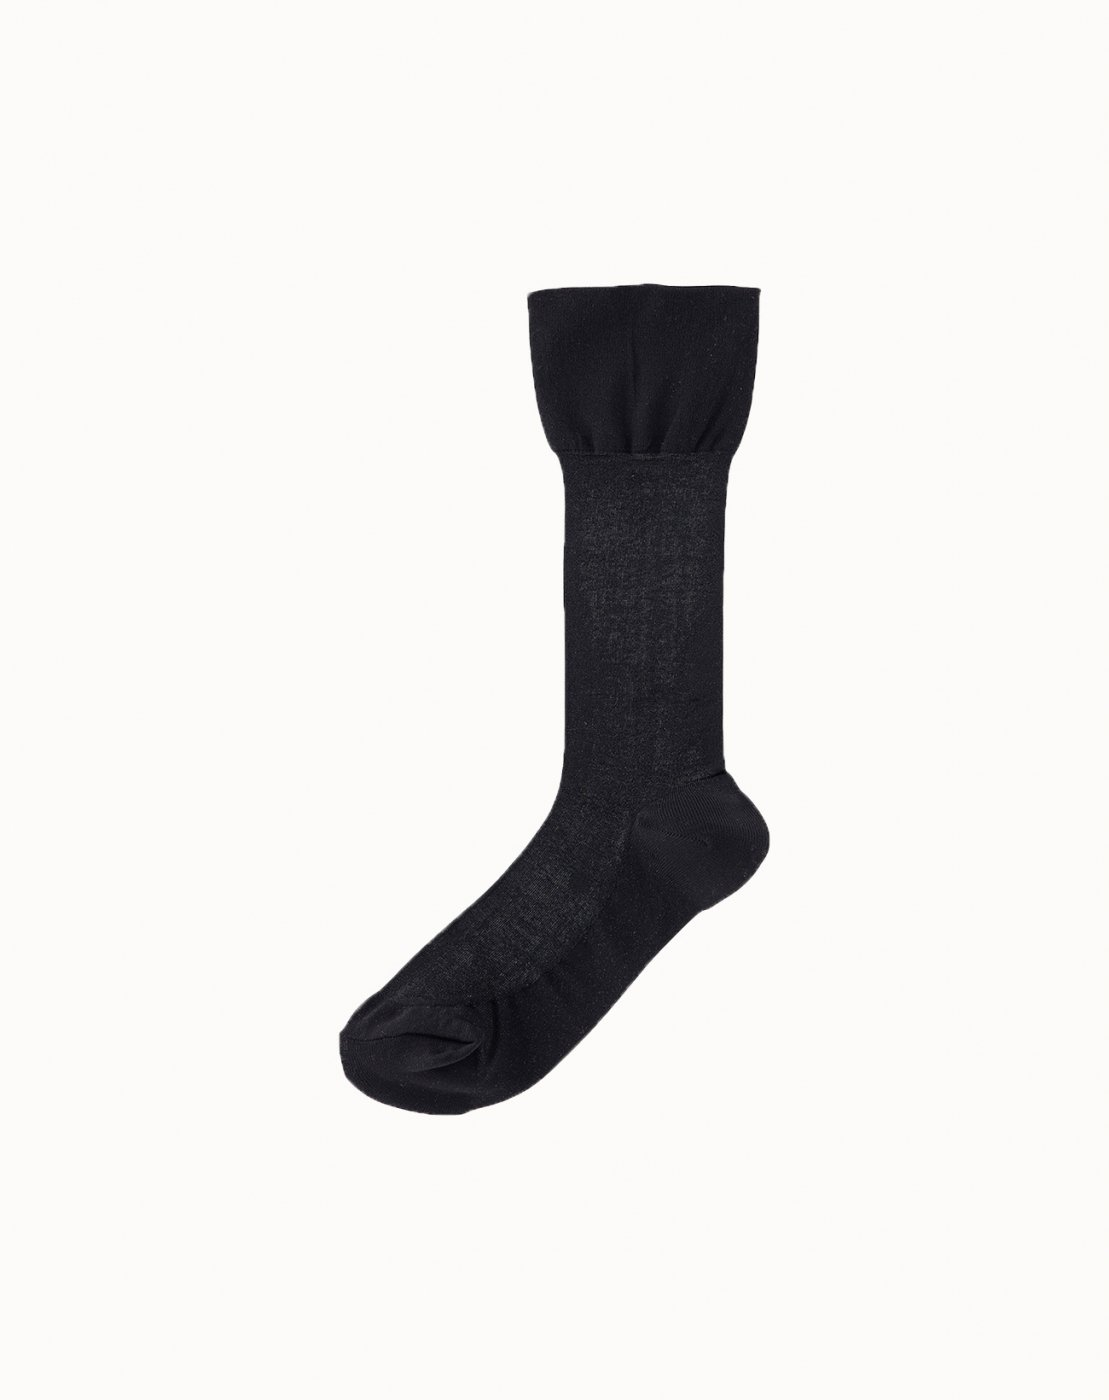 leur logette - Sheer Pattern Socks-Black